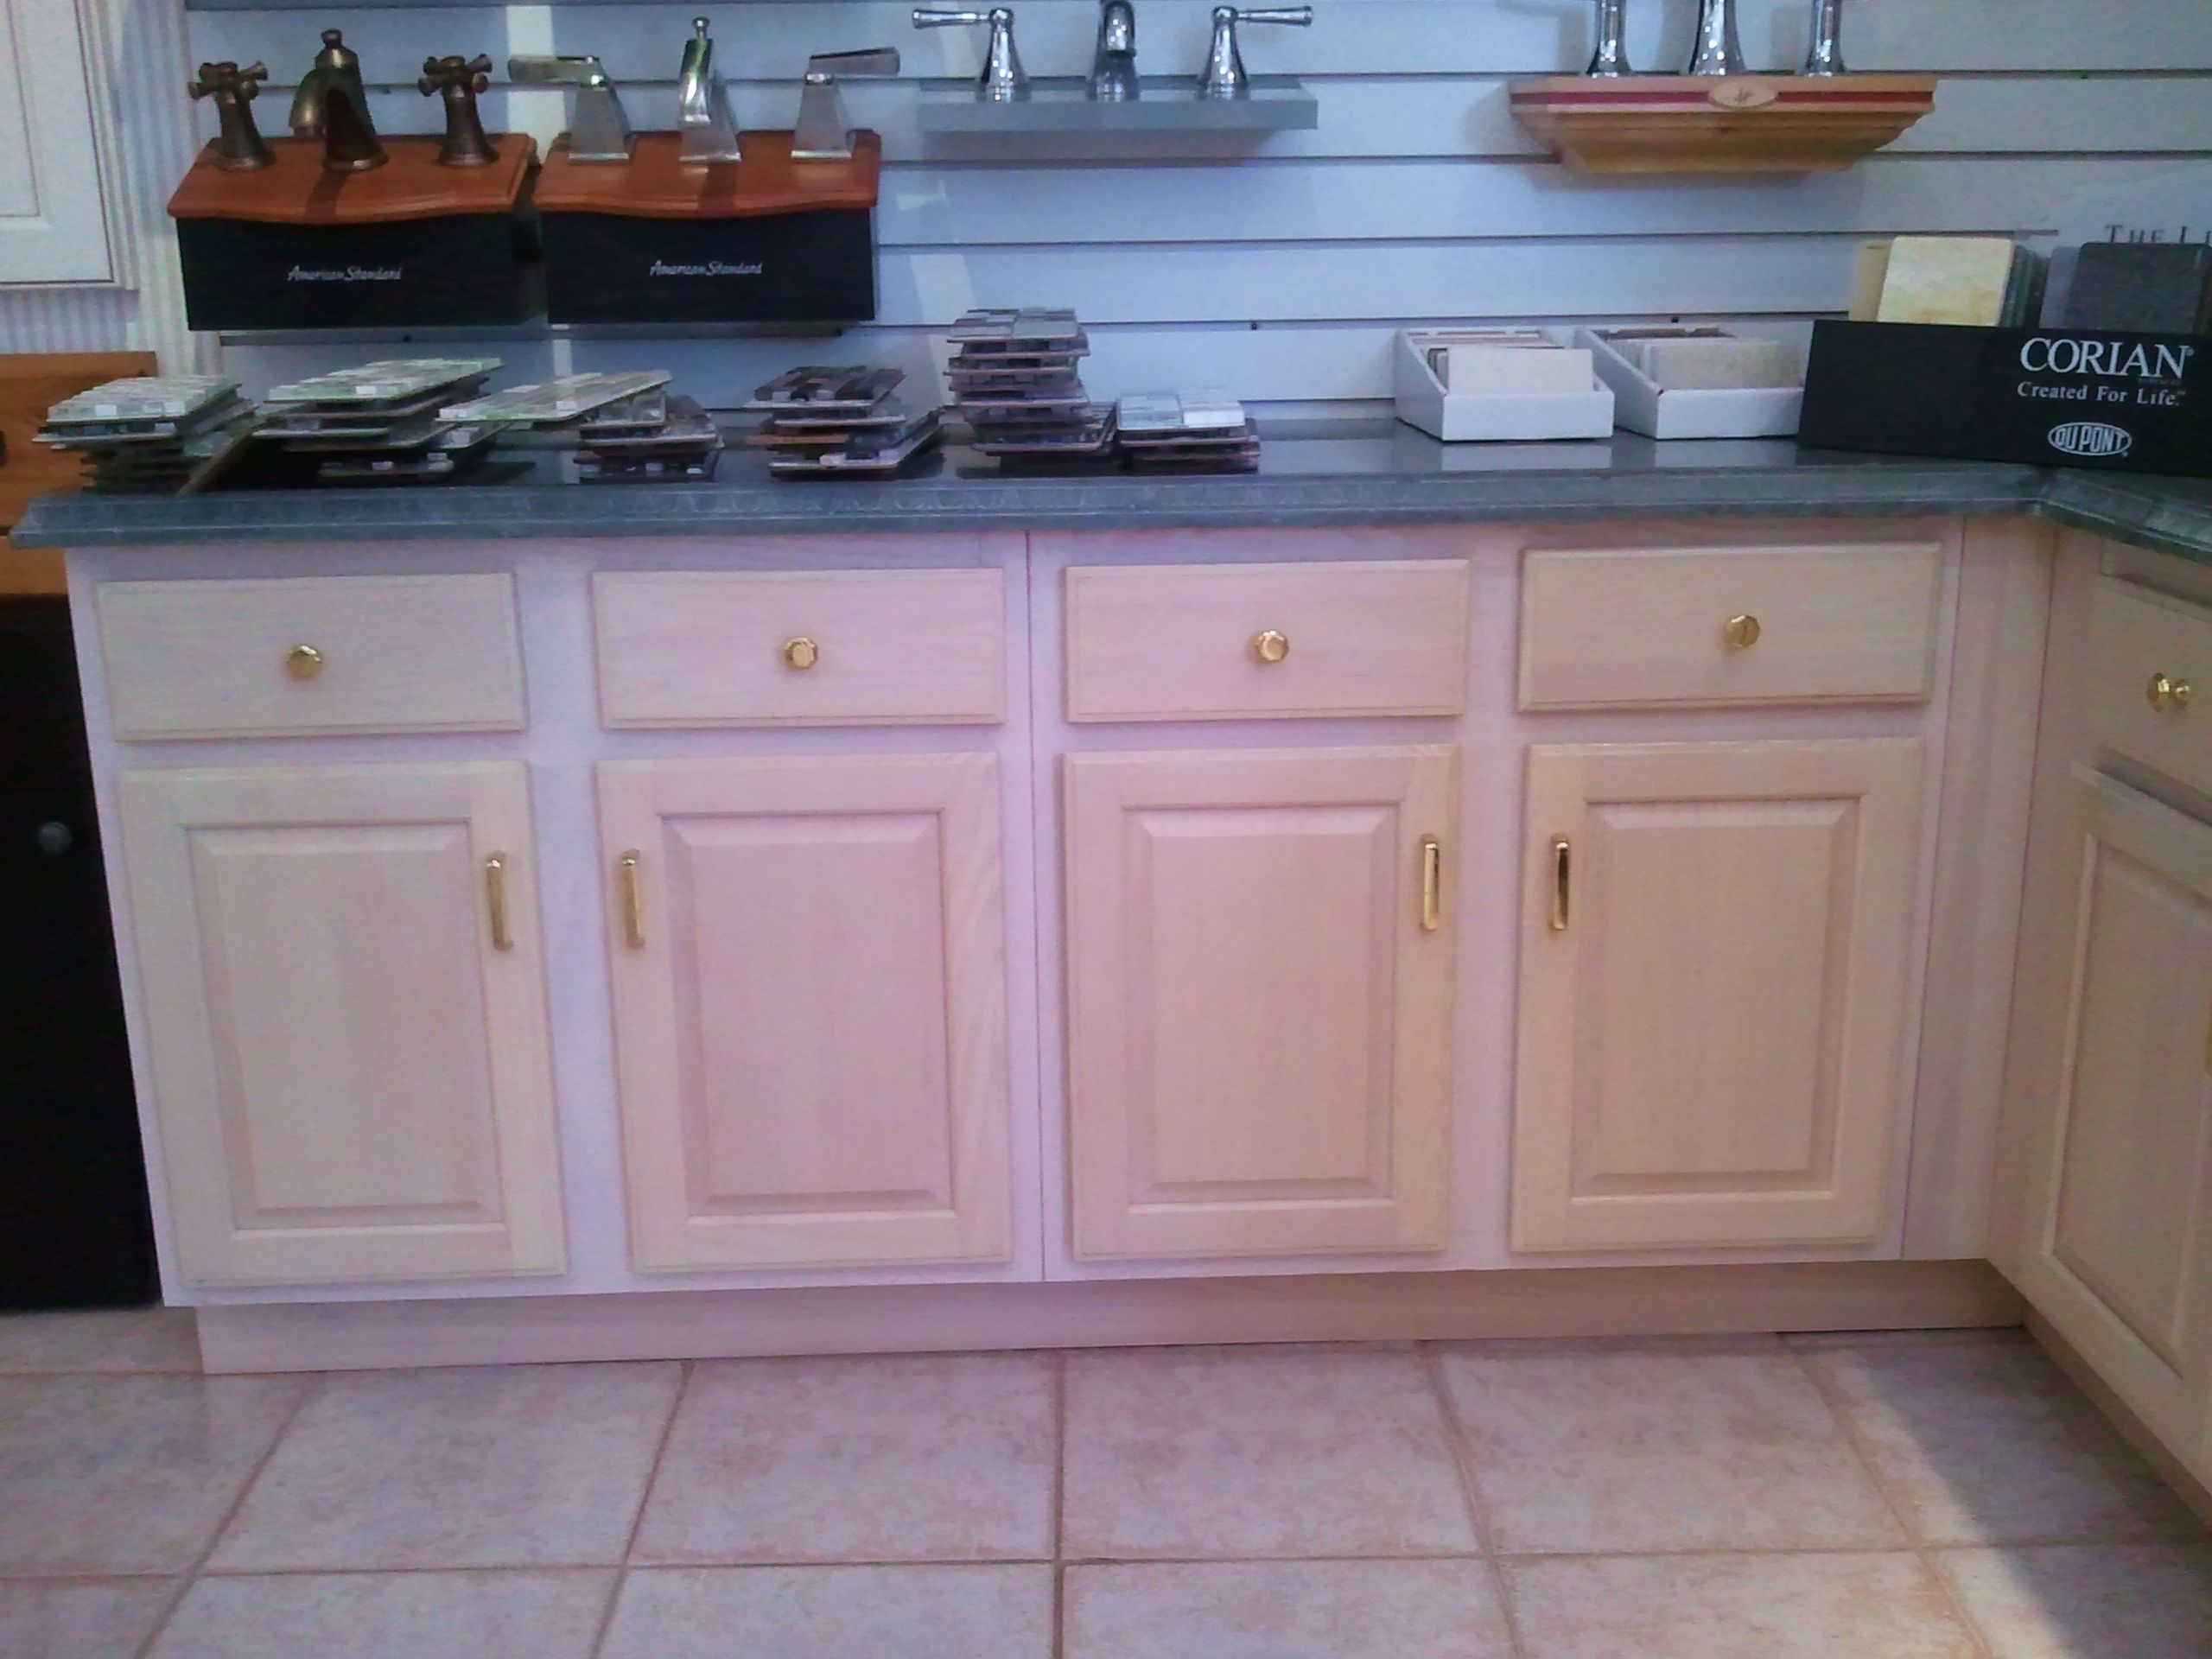 A Local Kitchen And Bath Showroom Had A Pickled Oak Cabinet Display That Needed An Update Kitchen And Bath Showroom Kitchen Remodel Kitchen